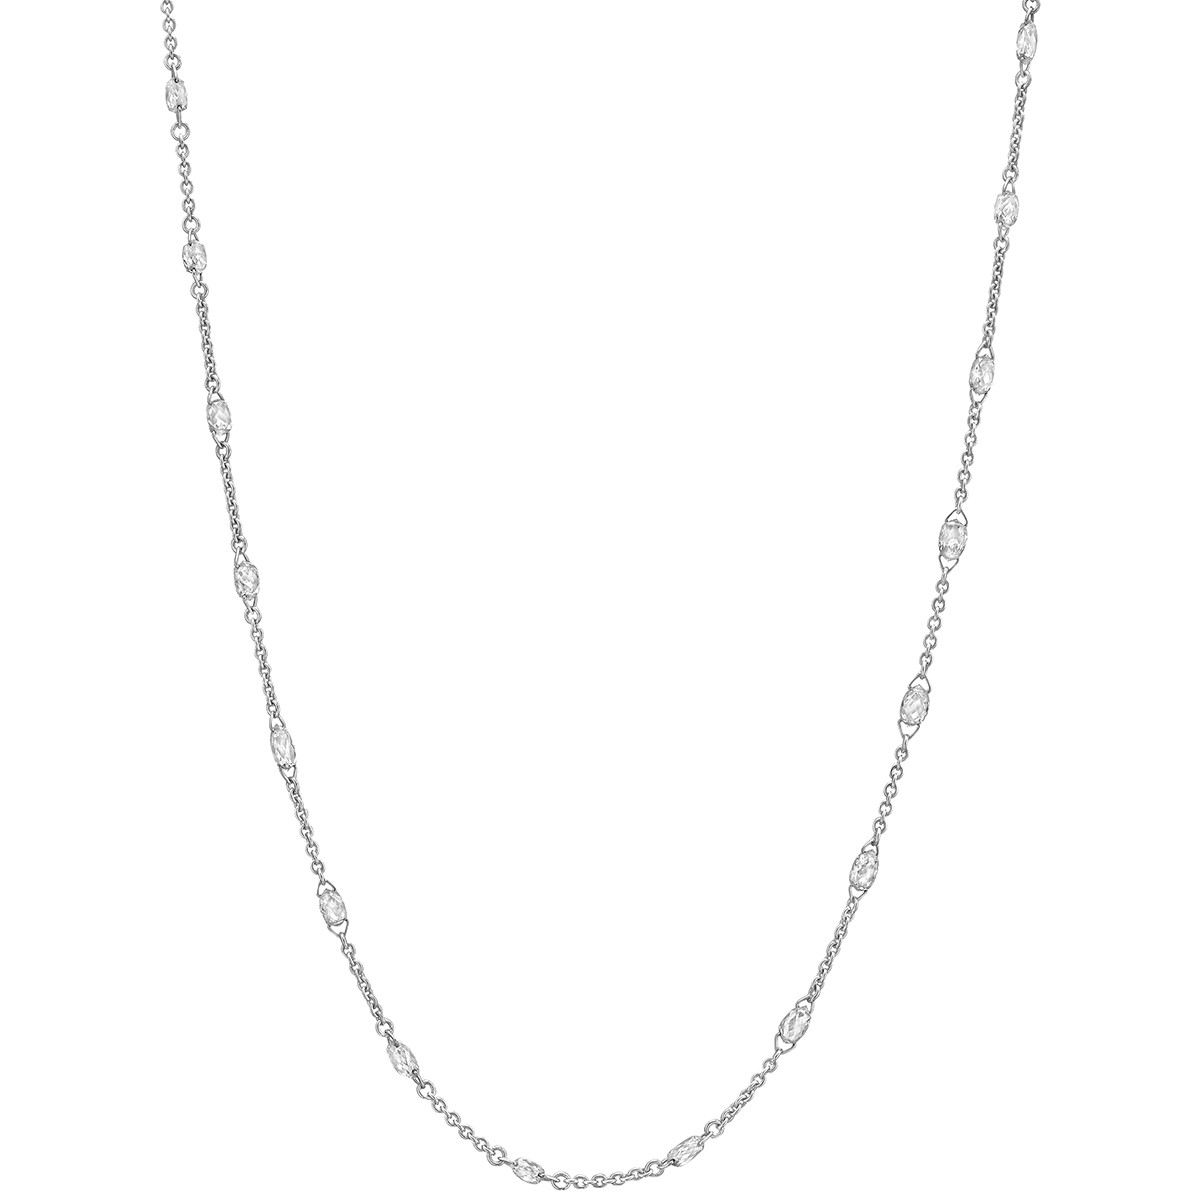 Briolette-Cut Diamond Chain Necklace (3.95 ct tw)